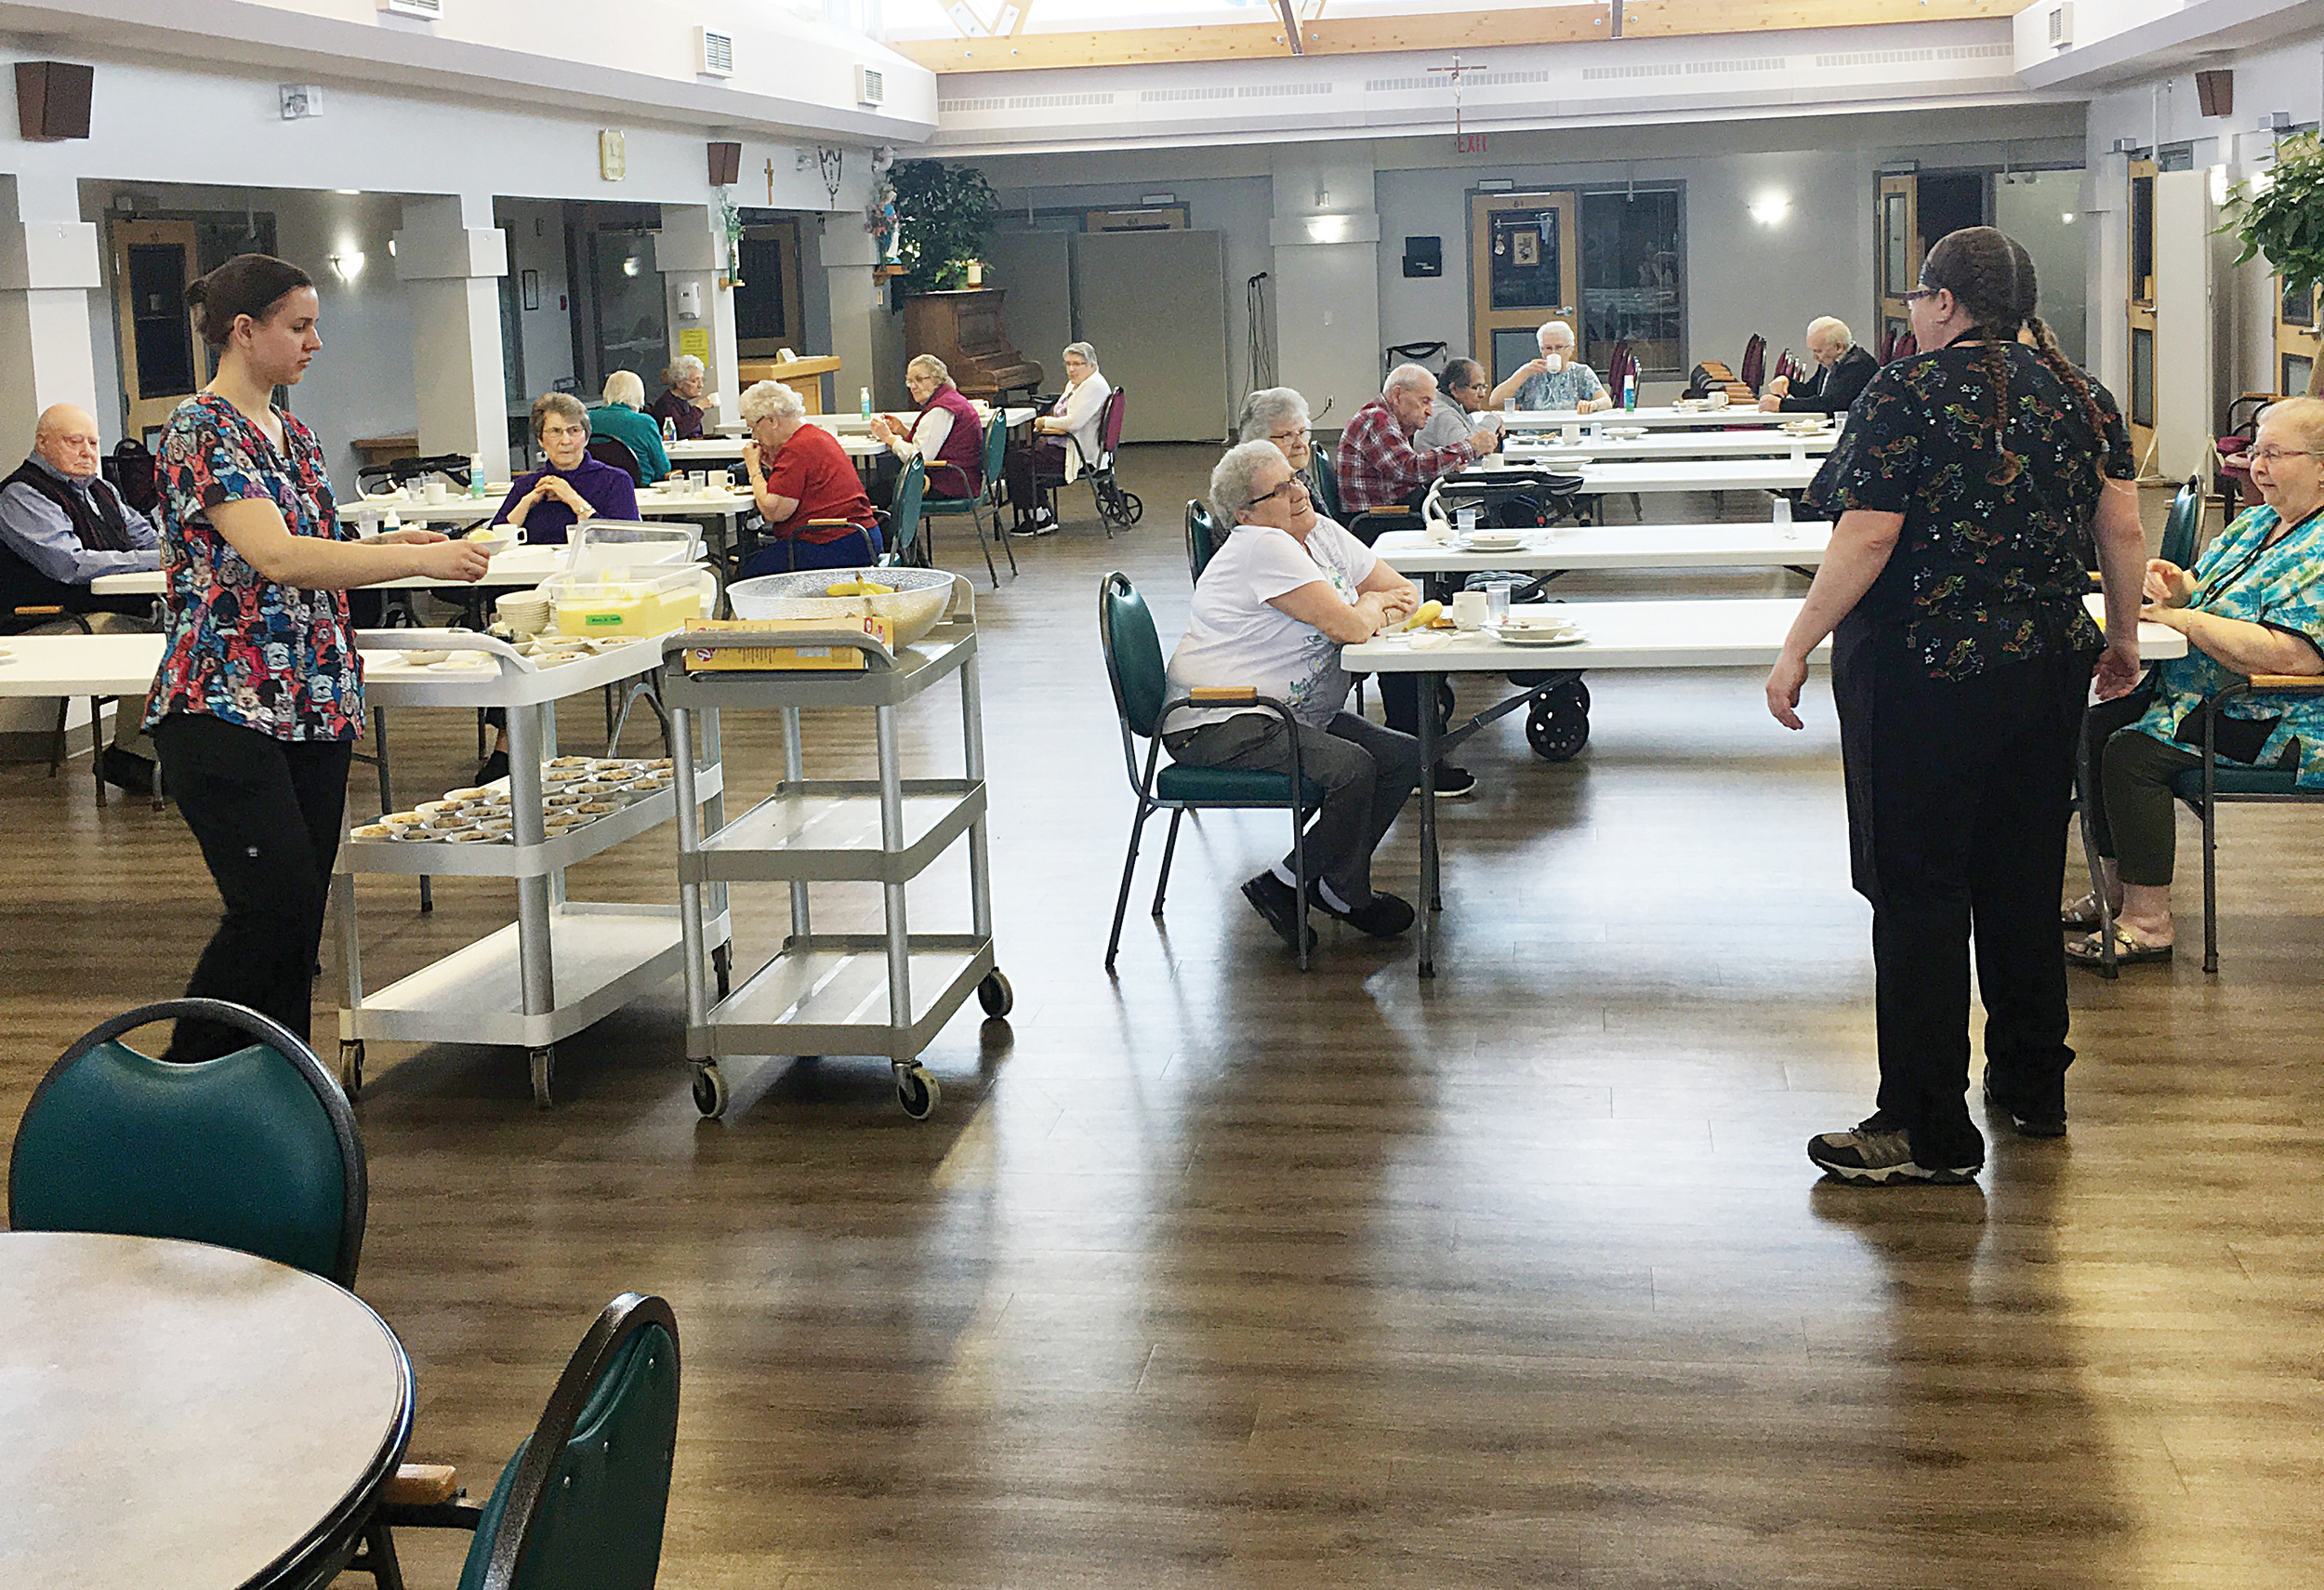 Sunnyside Manor is coping with health directives